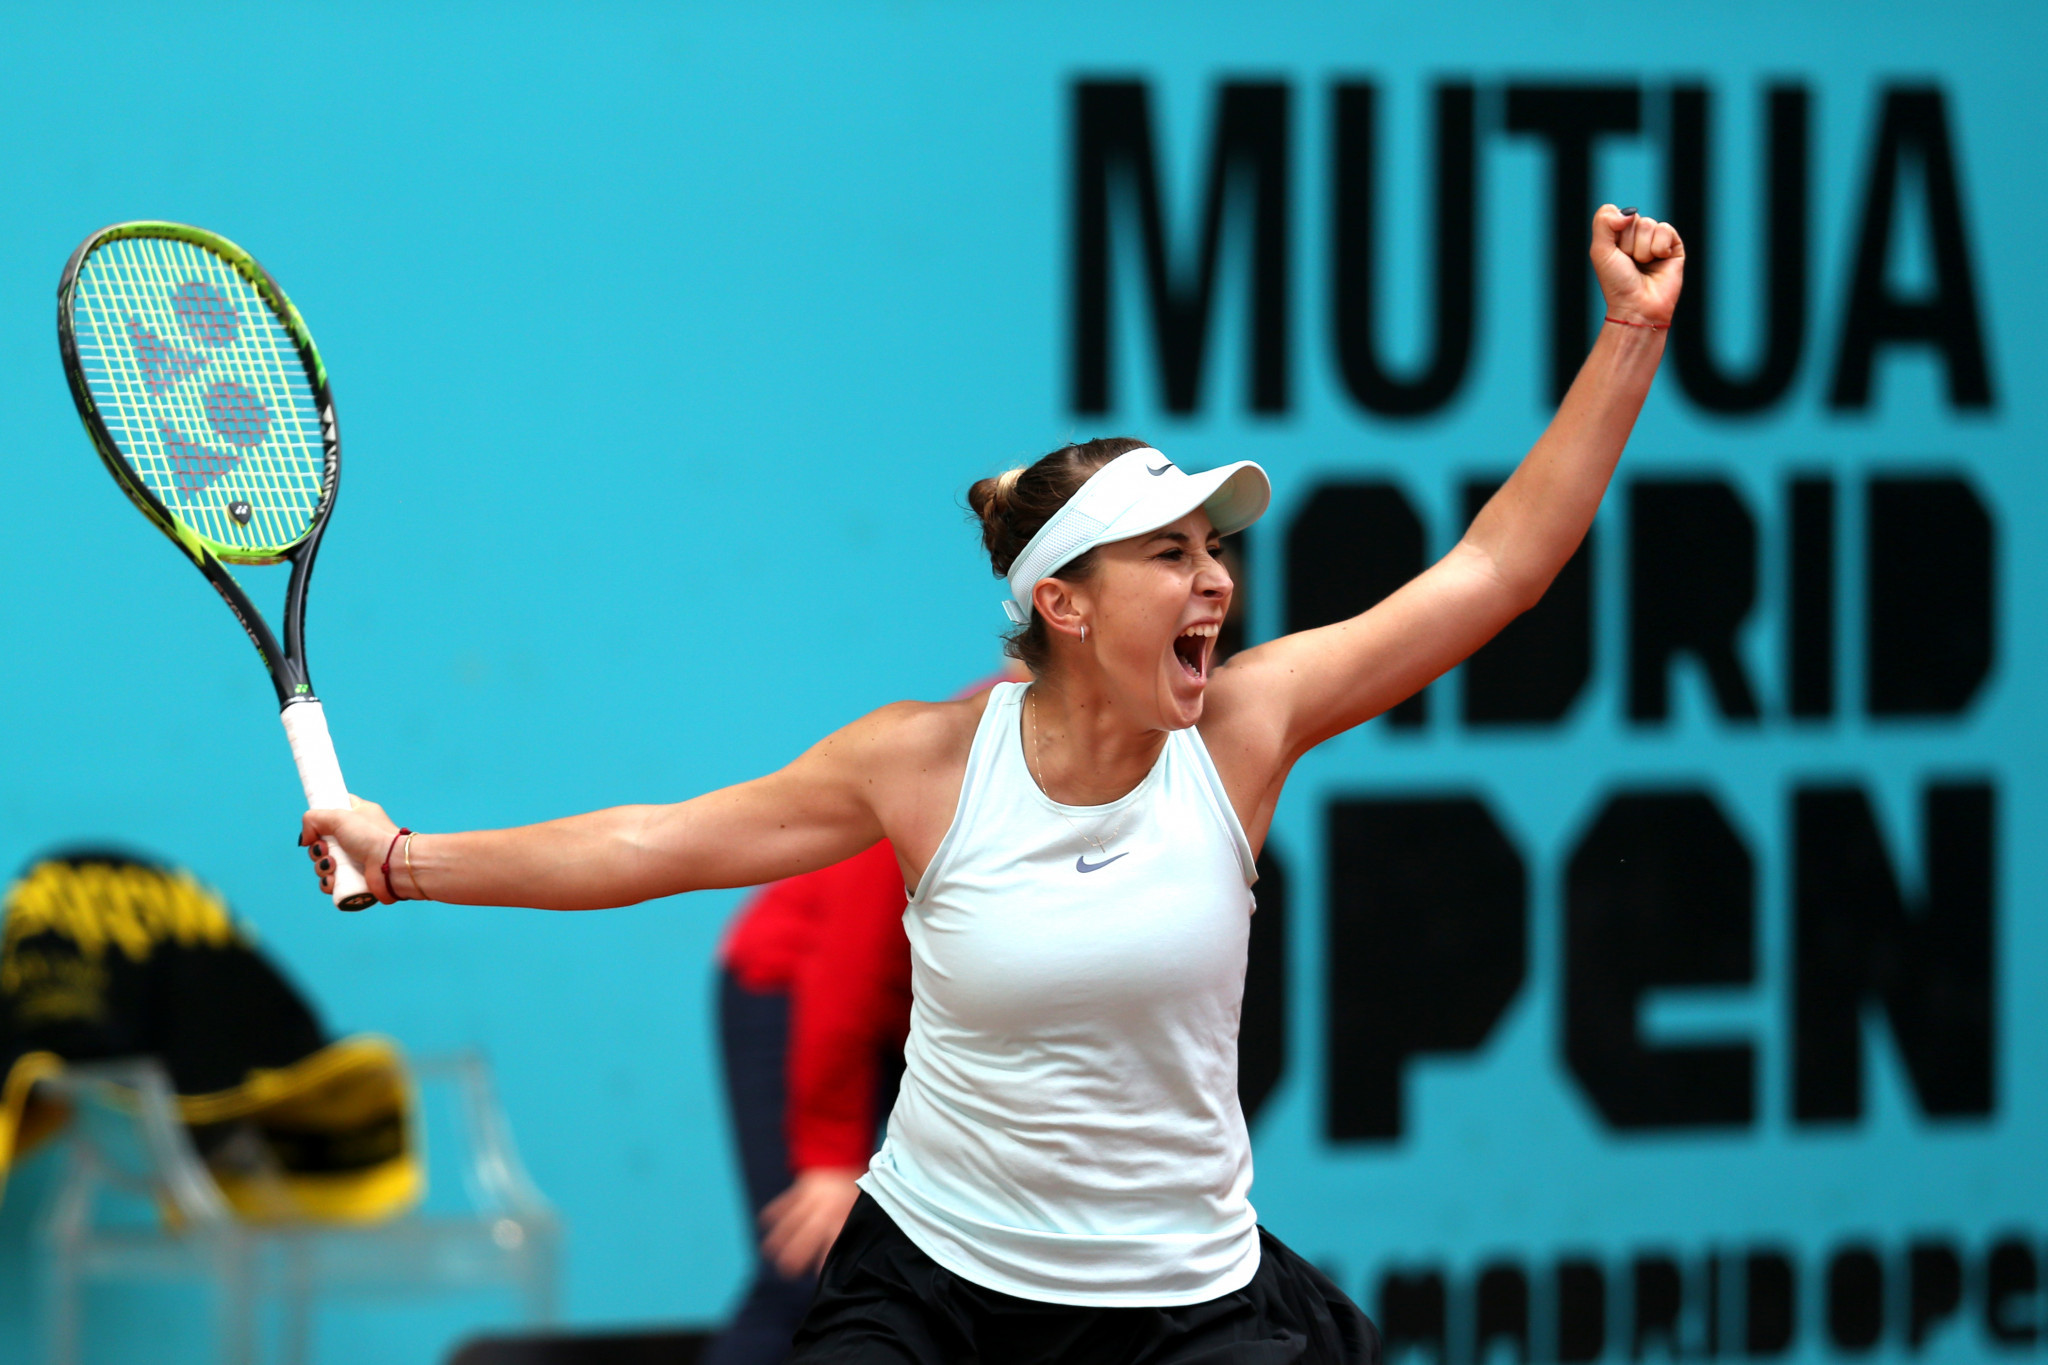 Bencic stuns world number one Osaka to reach semi-finals at Madrid Open